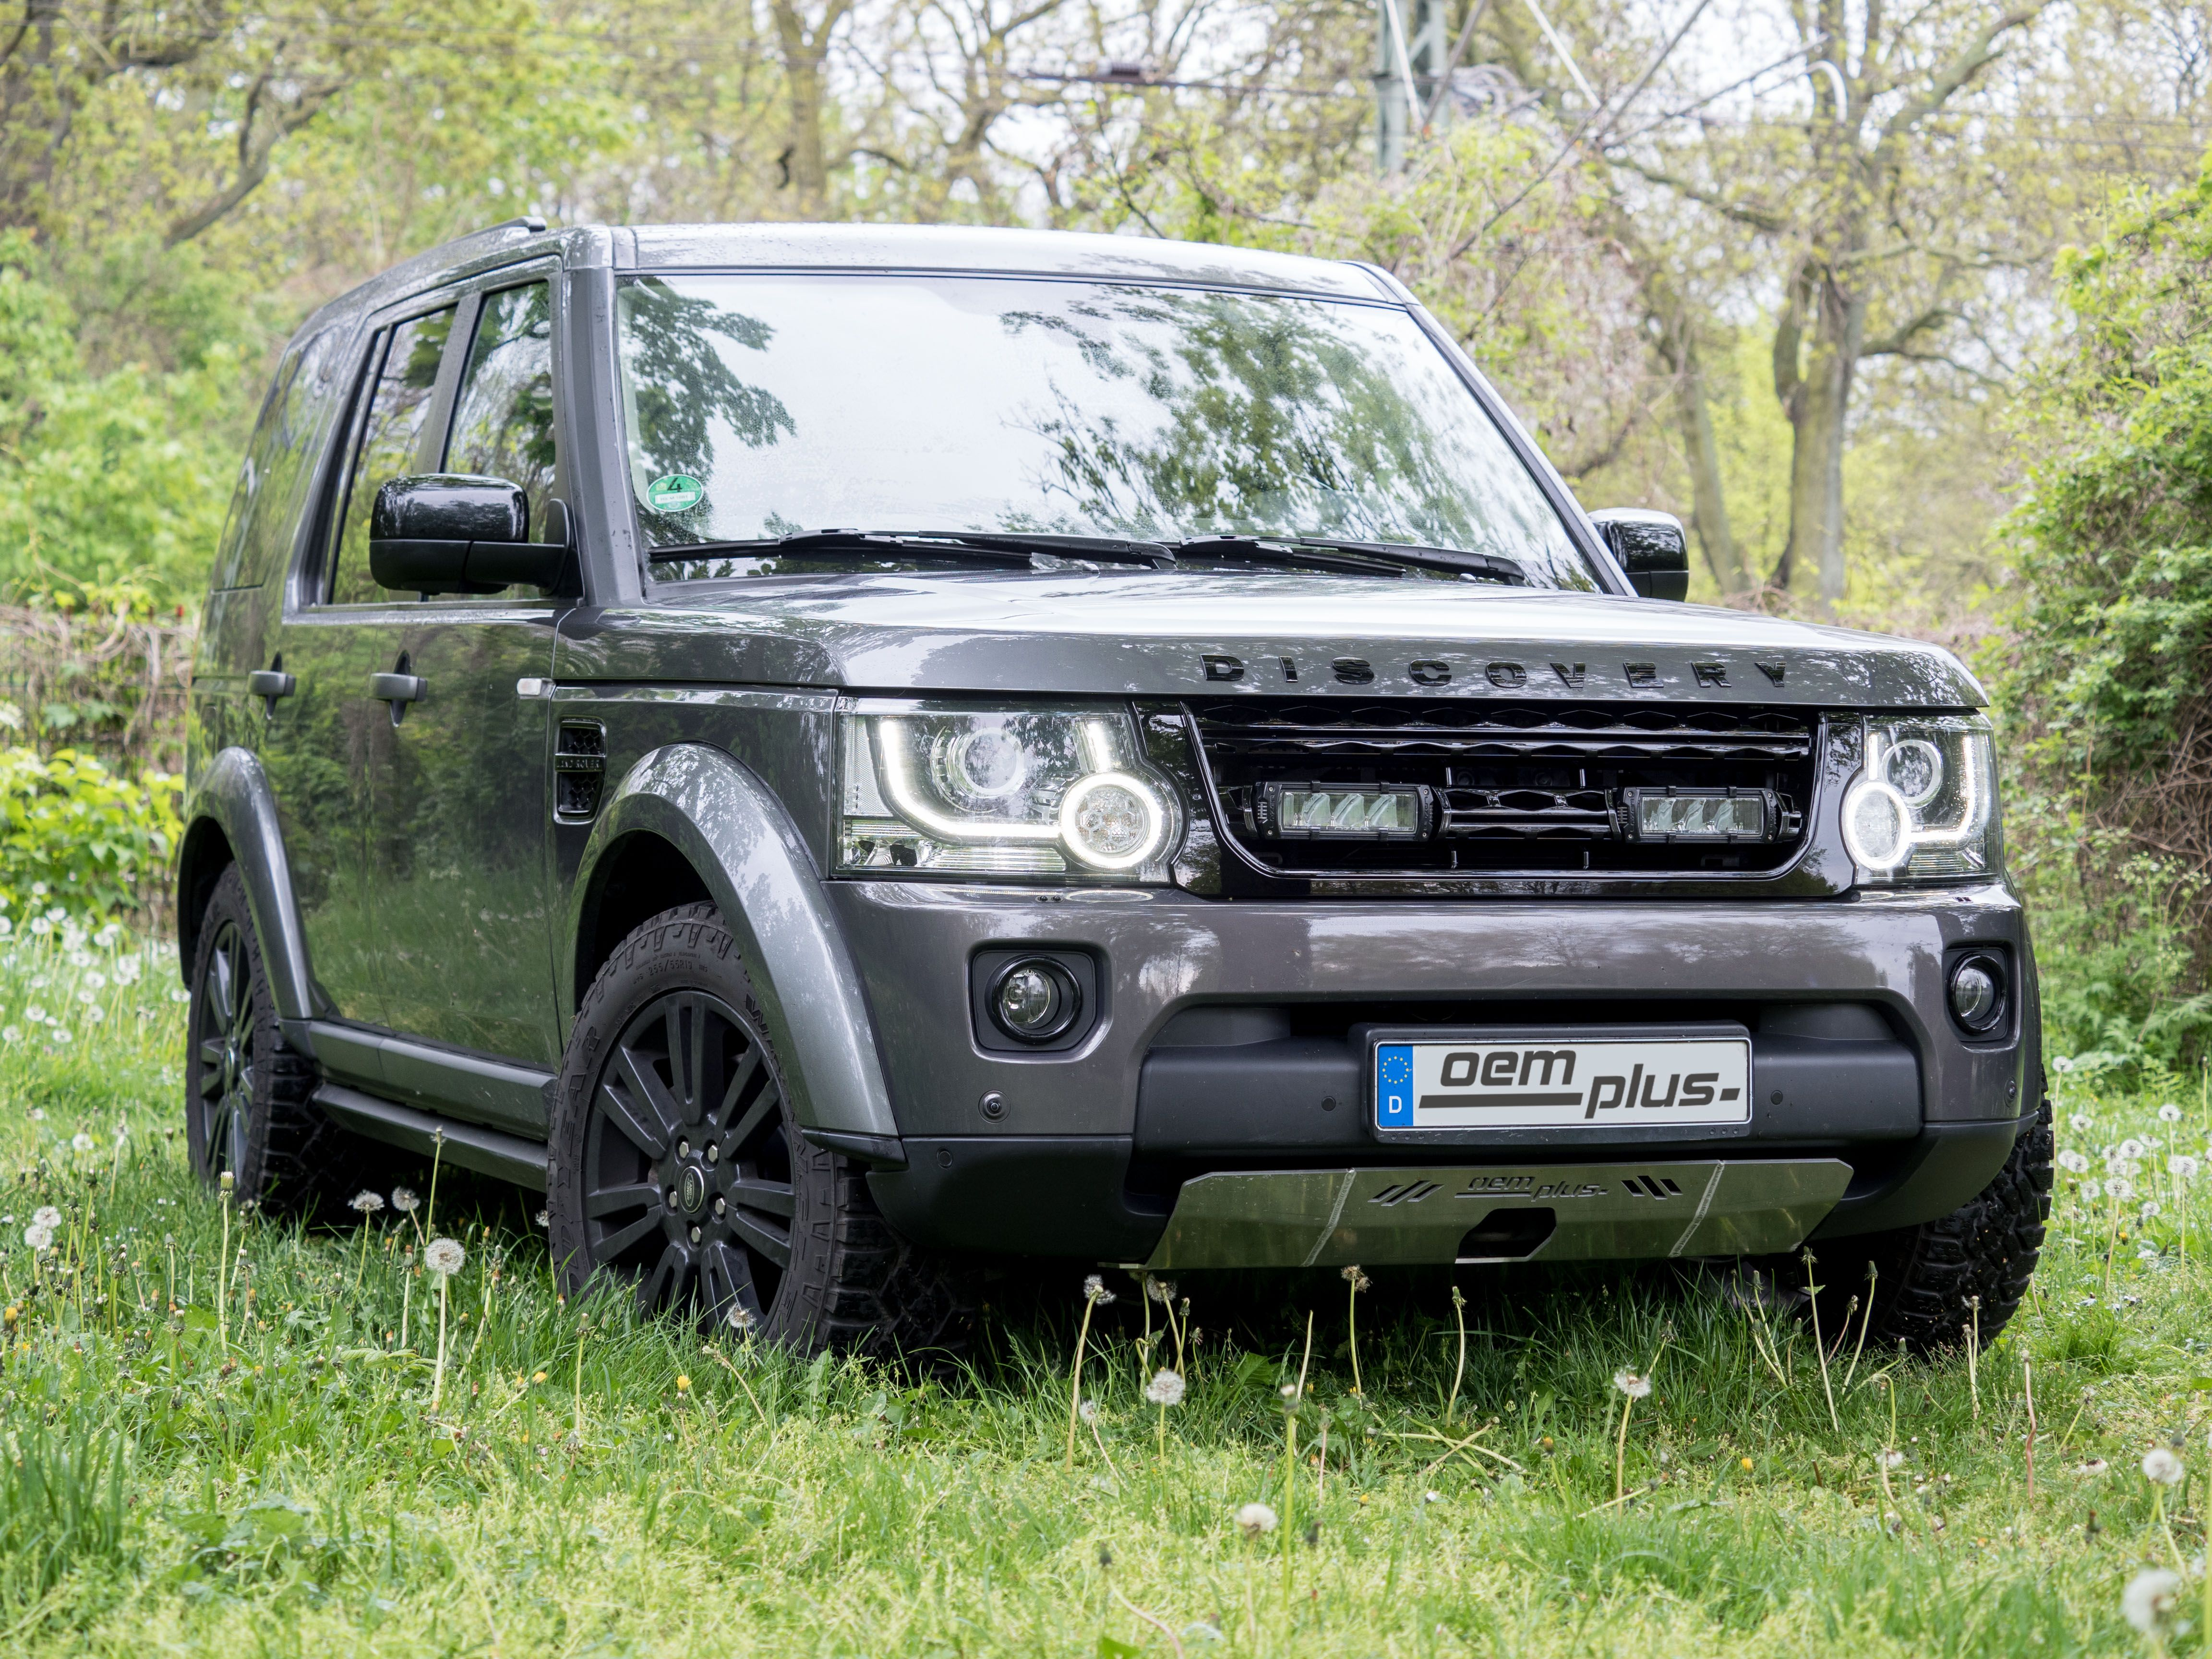 Land Rover Discovery with under body front protection and